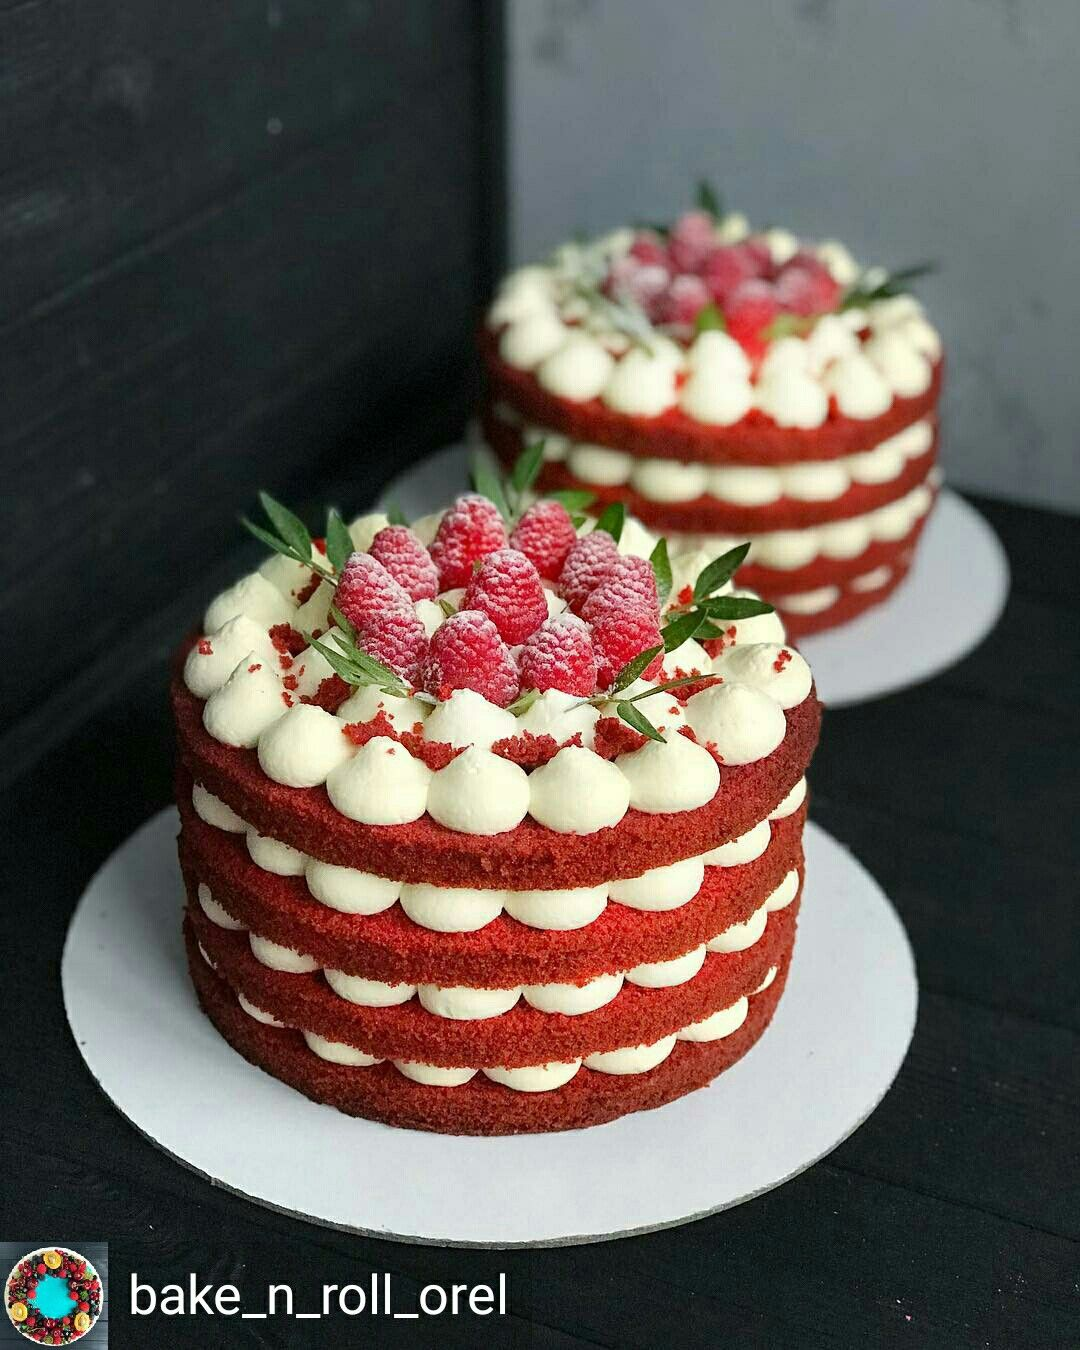 Looks Like Red Velvet With Whipped Cheese Cake Filling And